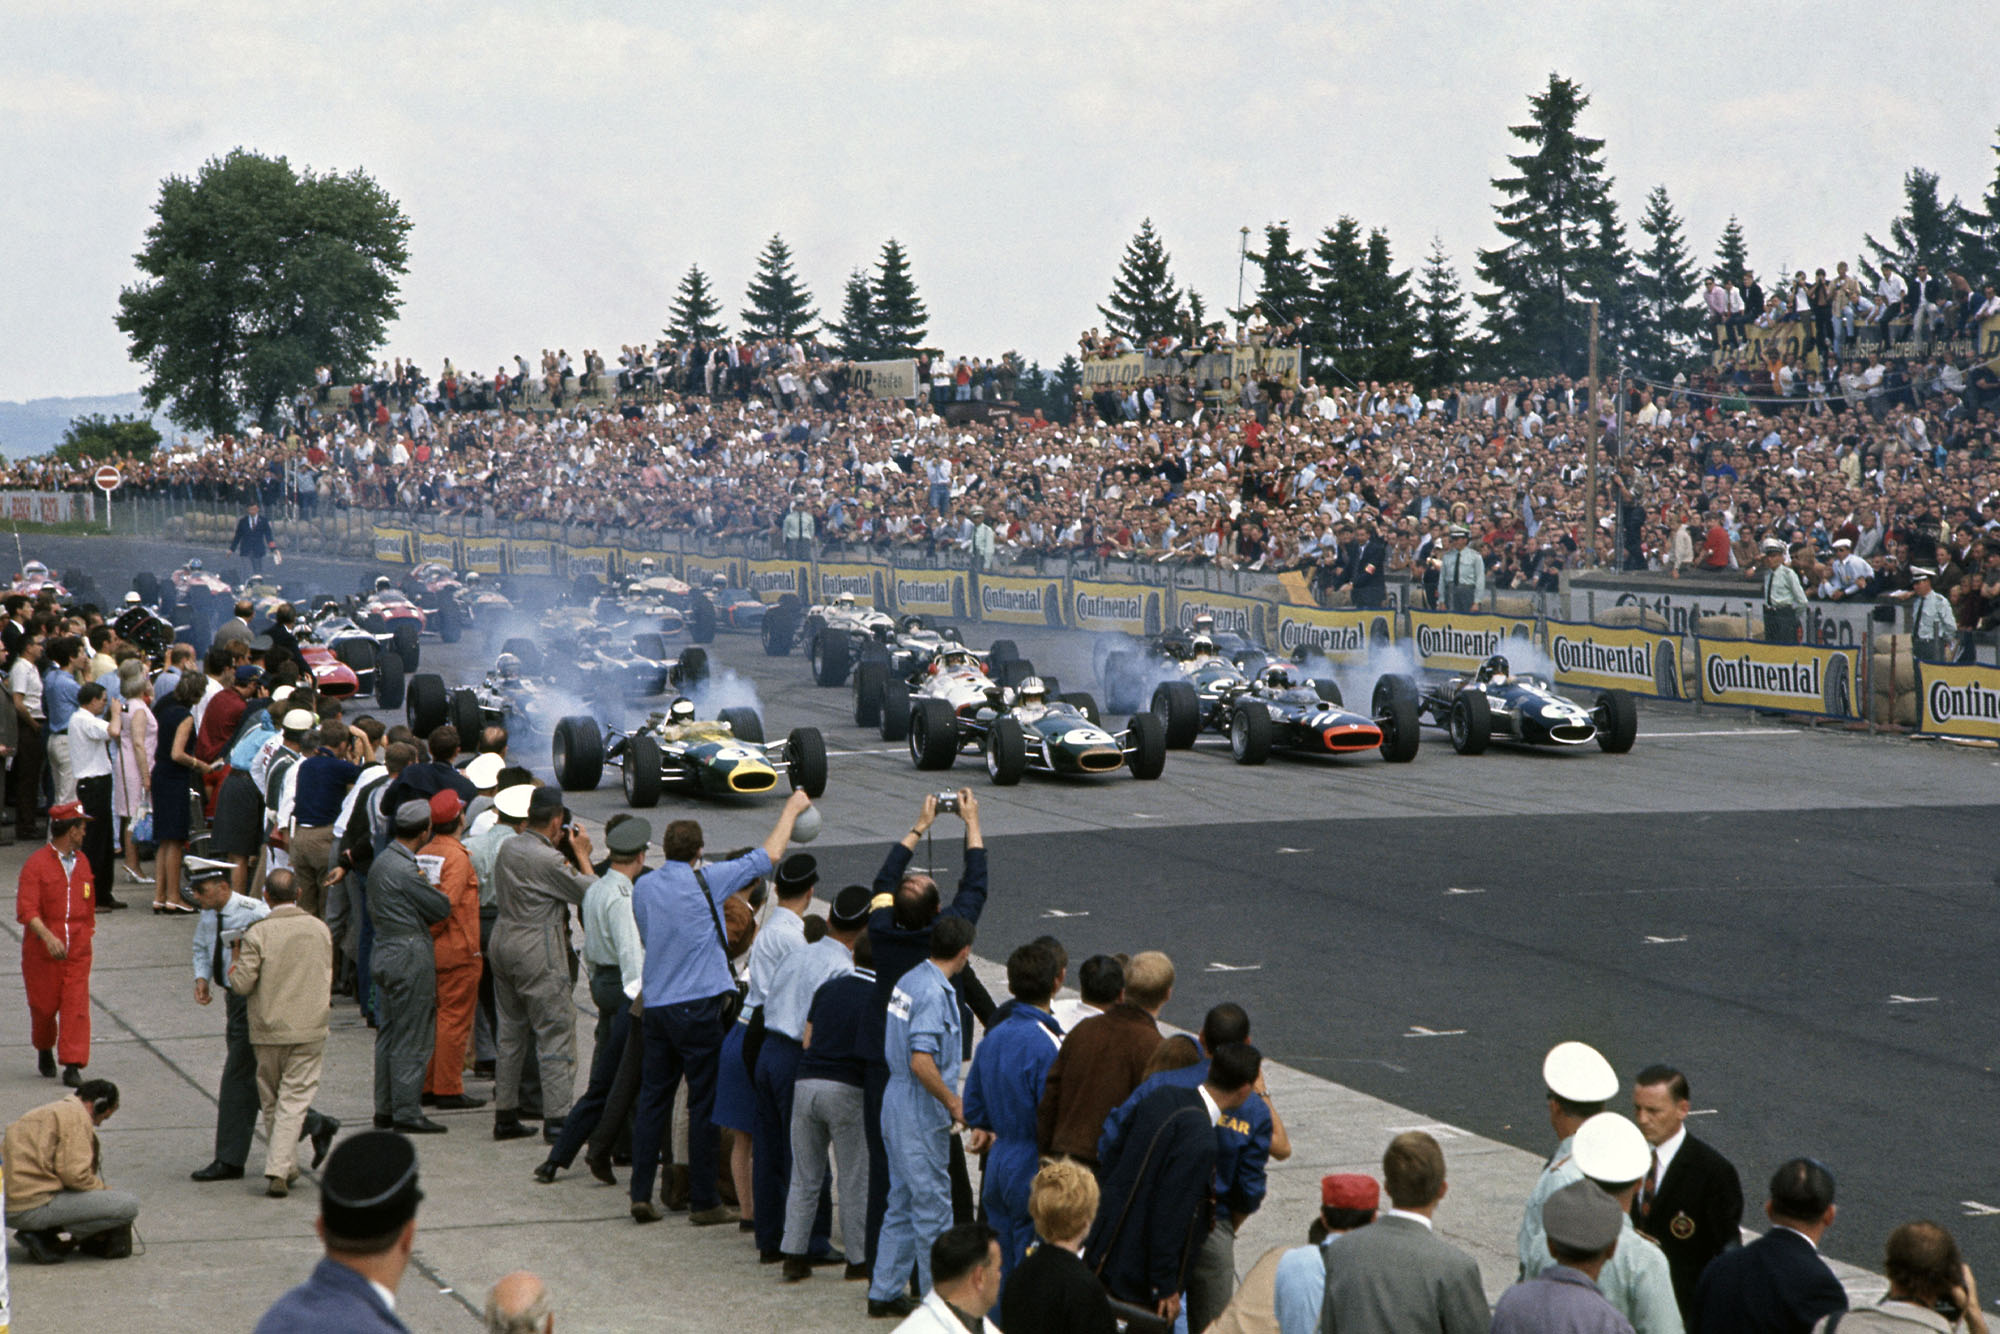 1967 German Grand Prix.Nurburgring, Germany. 6 August 1967.Jim Clark (Lotus 49-Ford Cosworth), Denny Hulme (Brabham BT24-Repco), Jackie Stewart (BRM P83) and Dan Gurney (Eagle T1G-Weslake) on the front row.